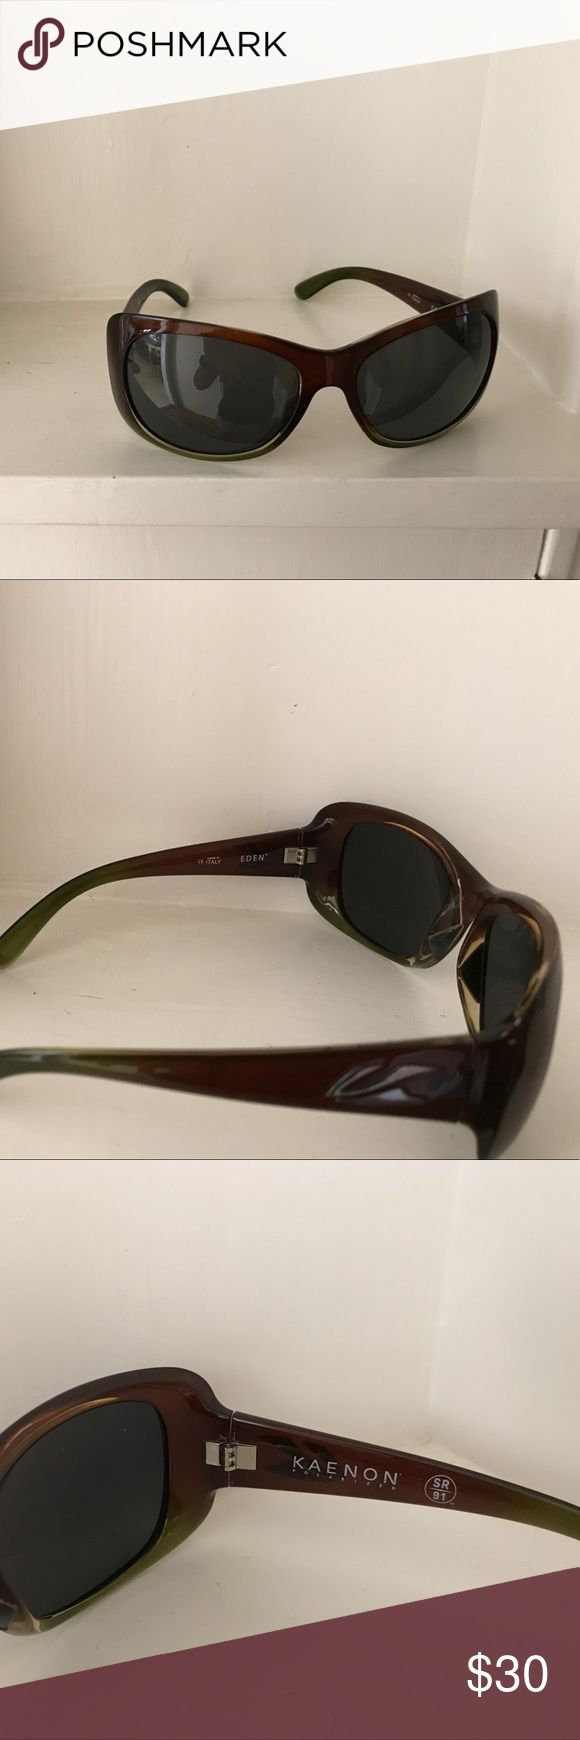 Kaenon sunglasses Eden Kaenon  sunglasses Eden,  tortoise color, still in good condition kaenon Accessories Sunglasses